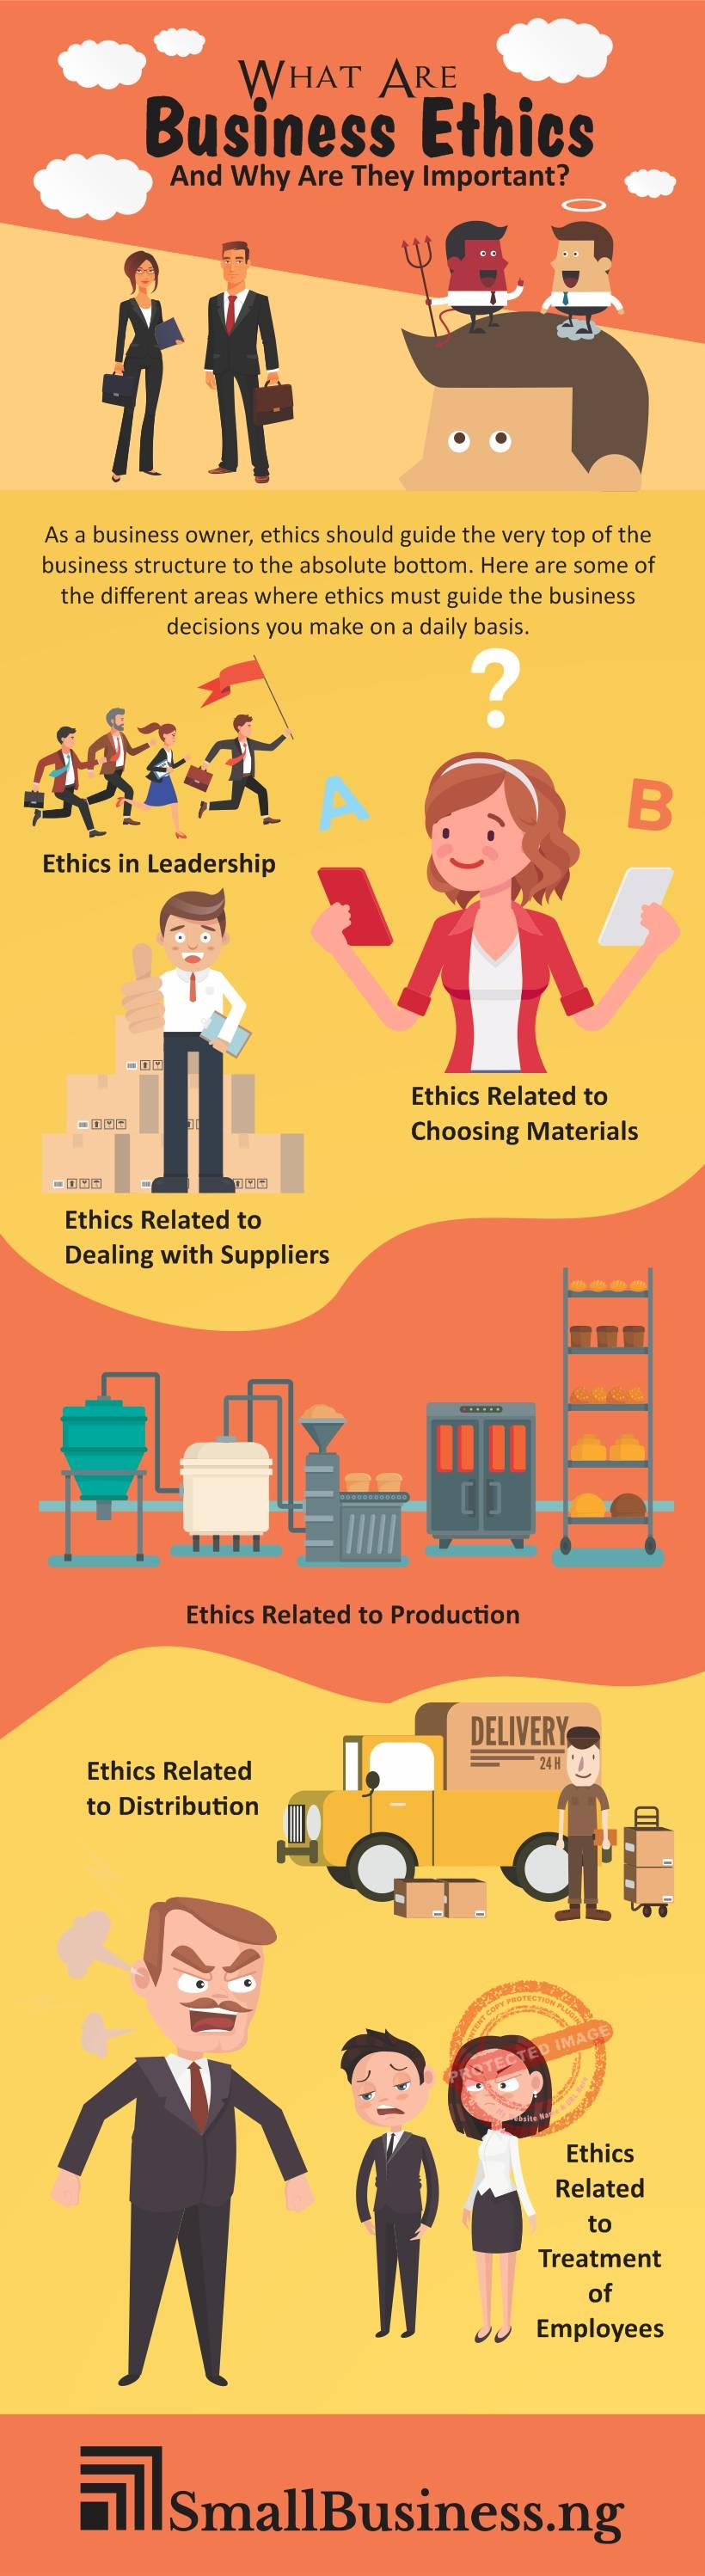 What Are Business Ethics And Why Are They Important infographic